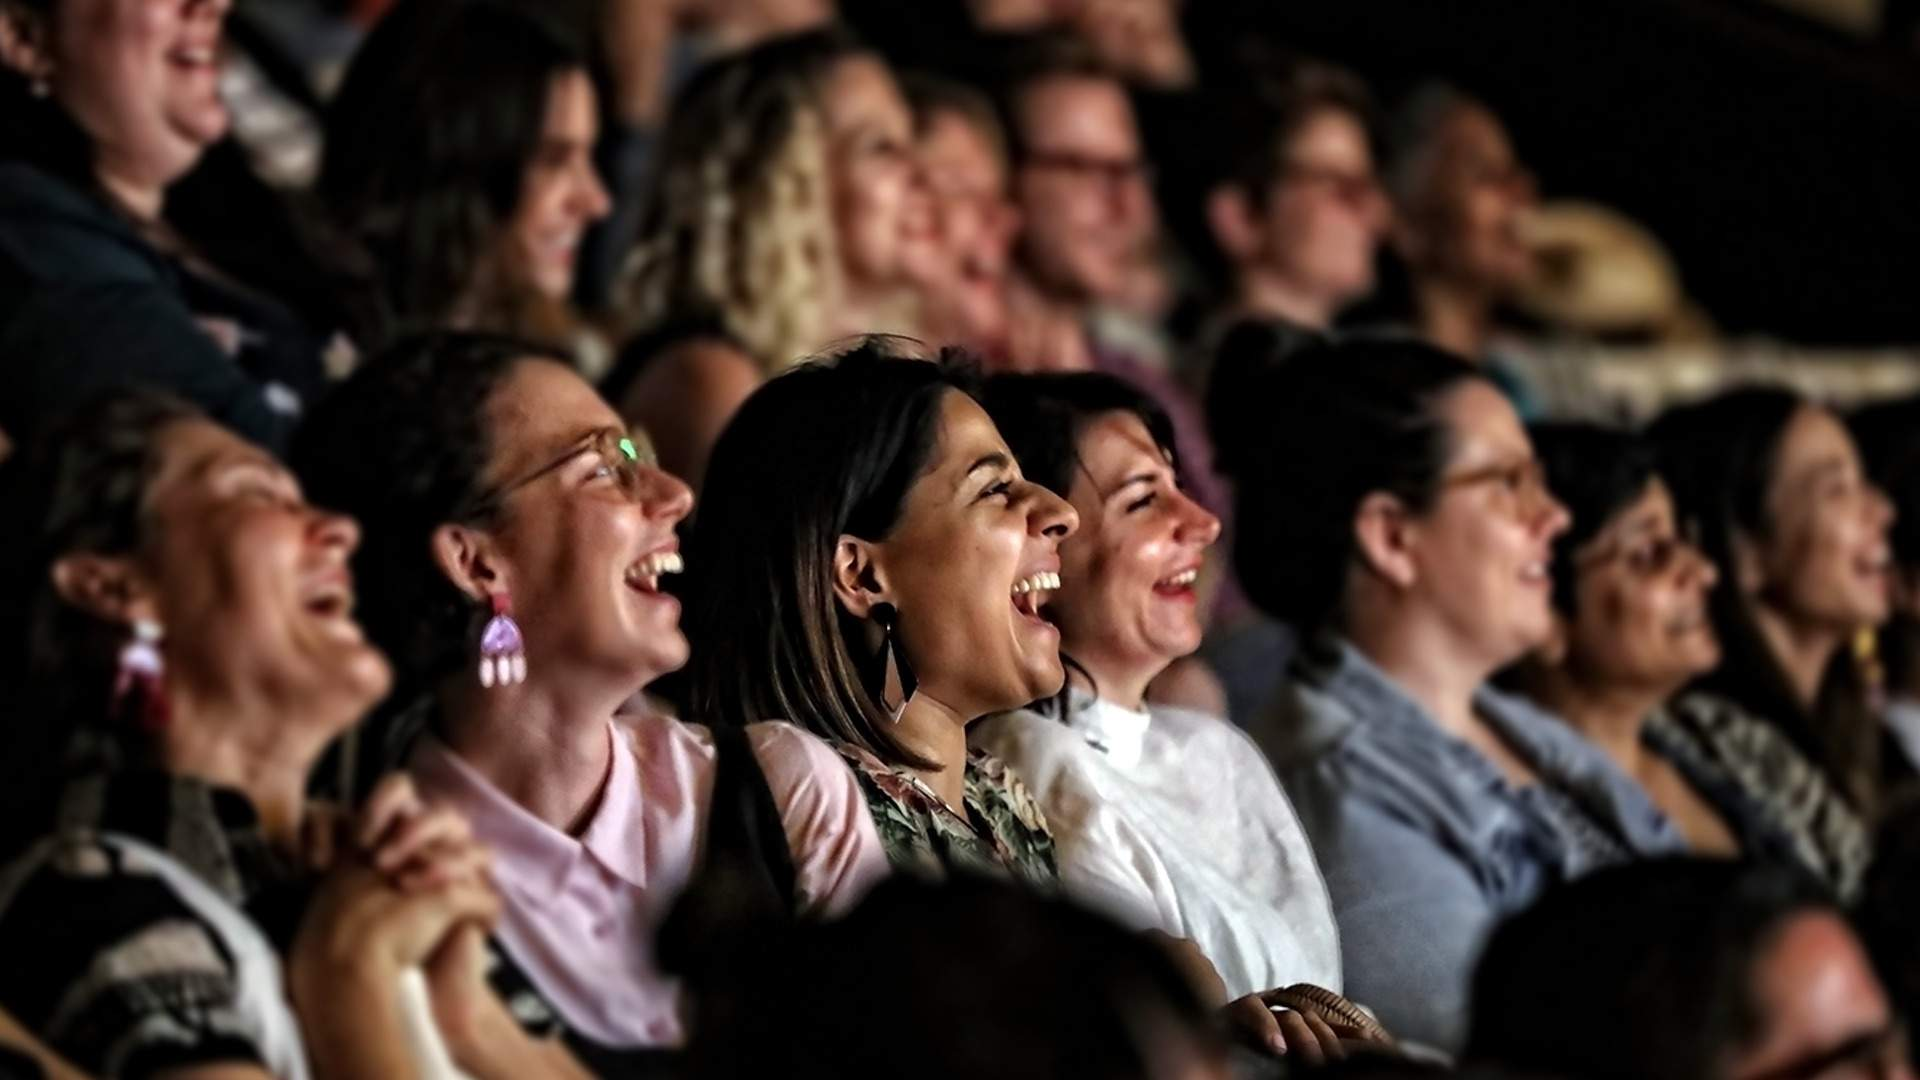 Sydney's All About Women Festival Returns for 2020 with a Day of Post-#MeToo Era Talks